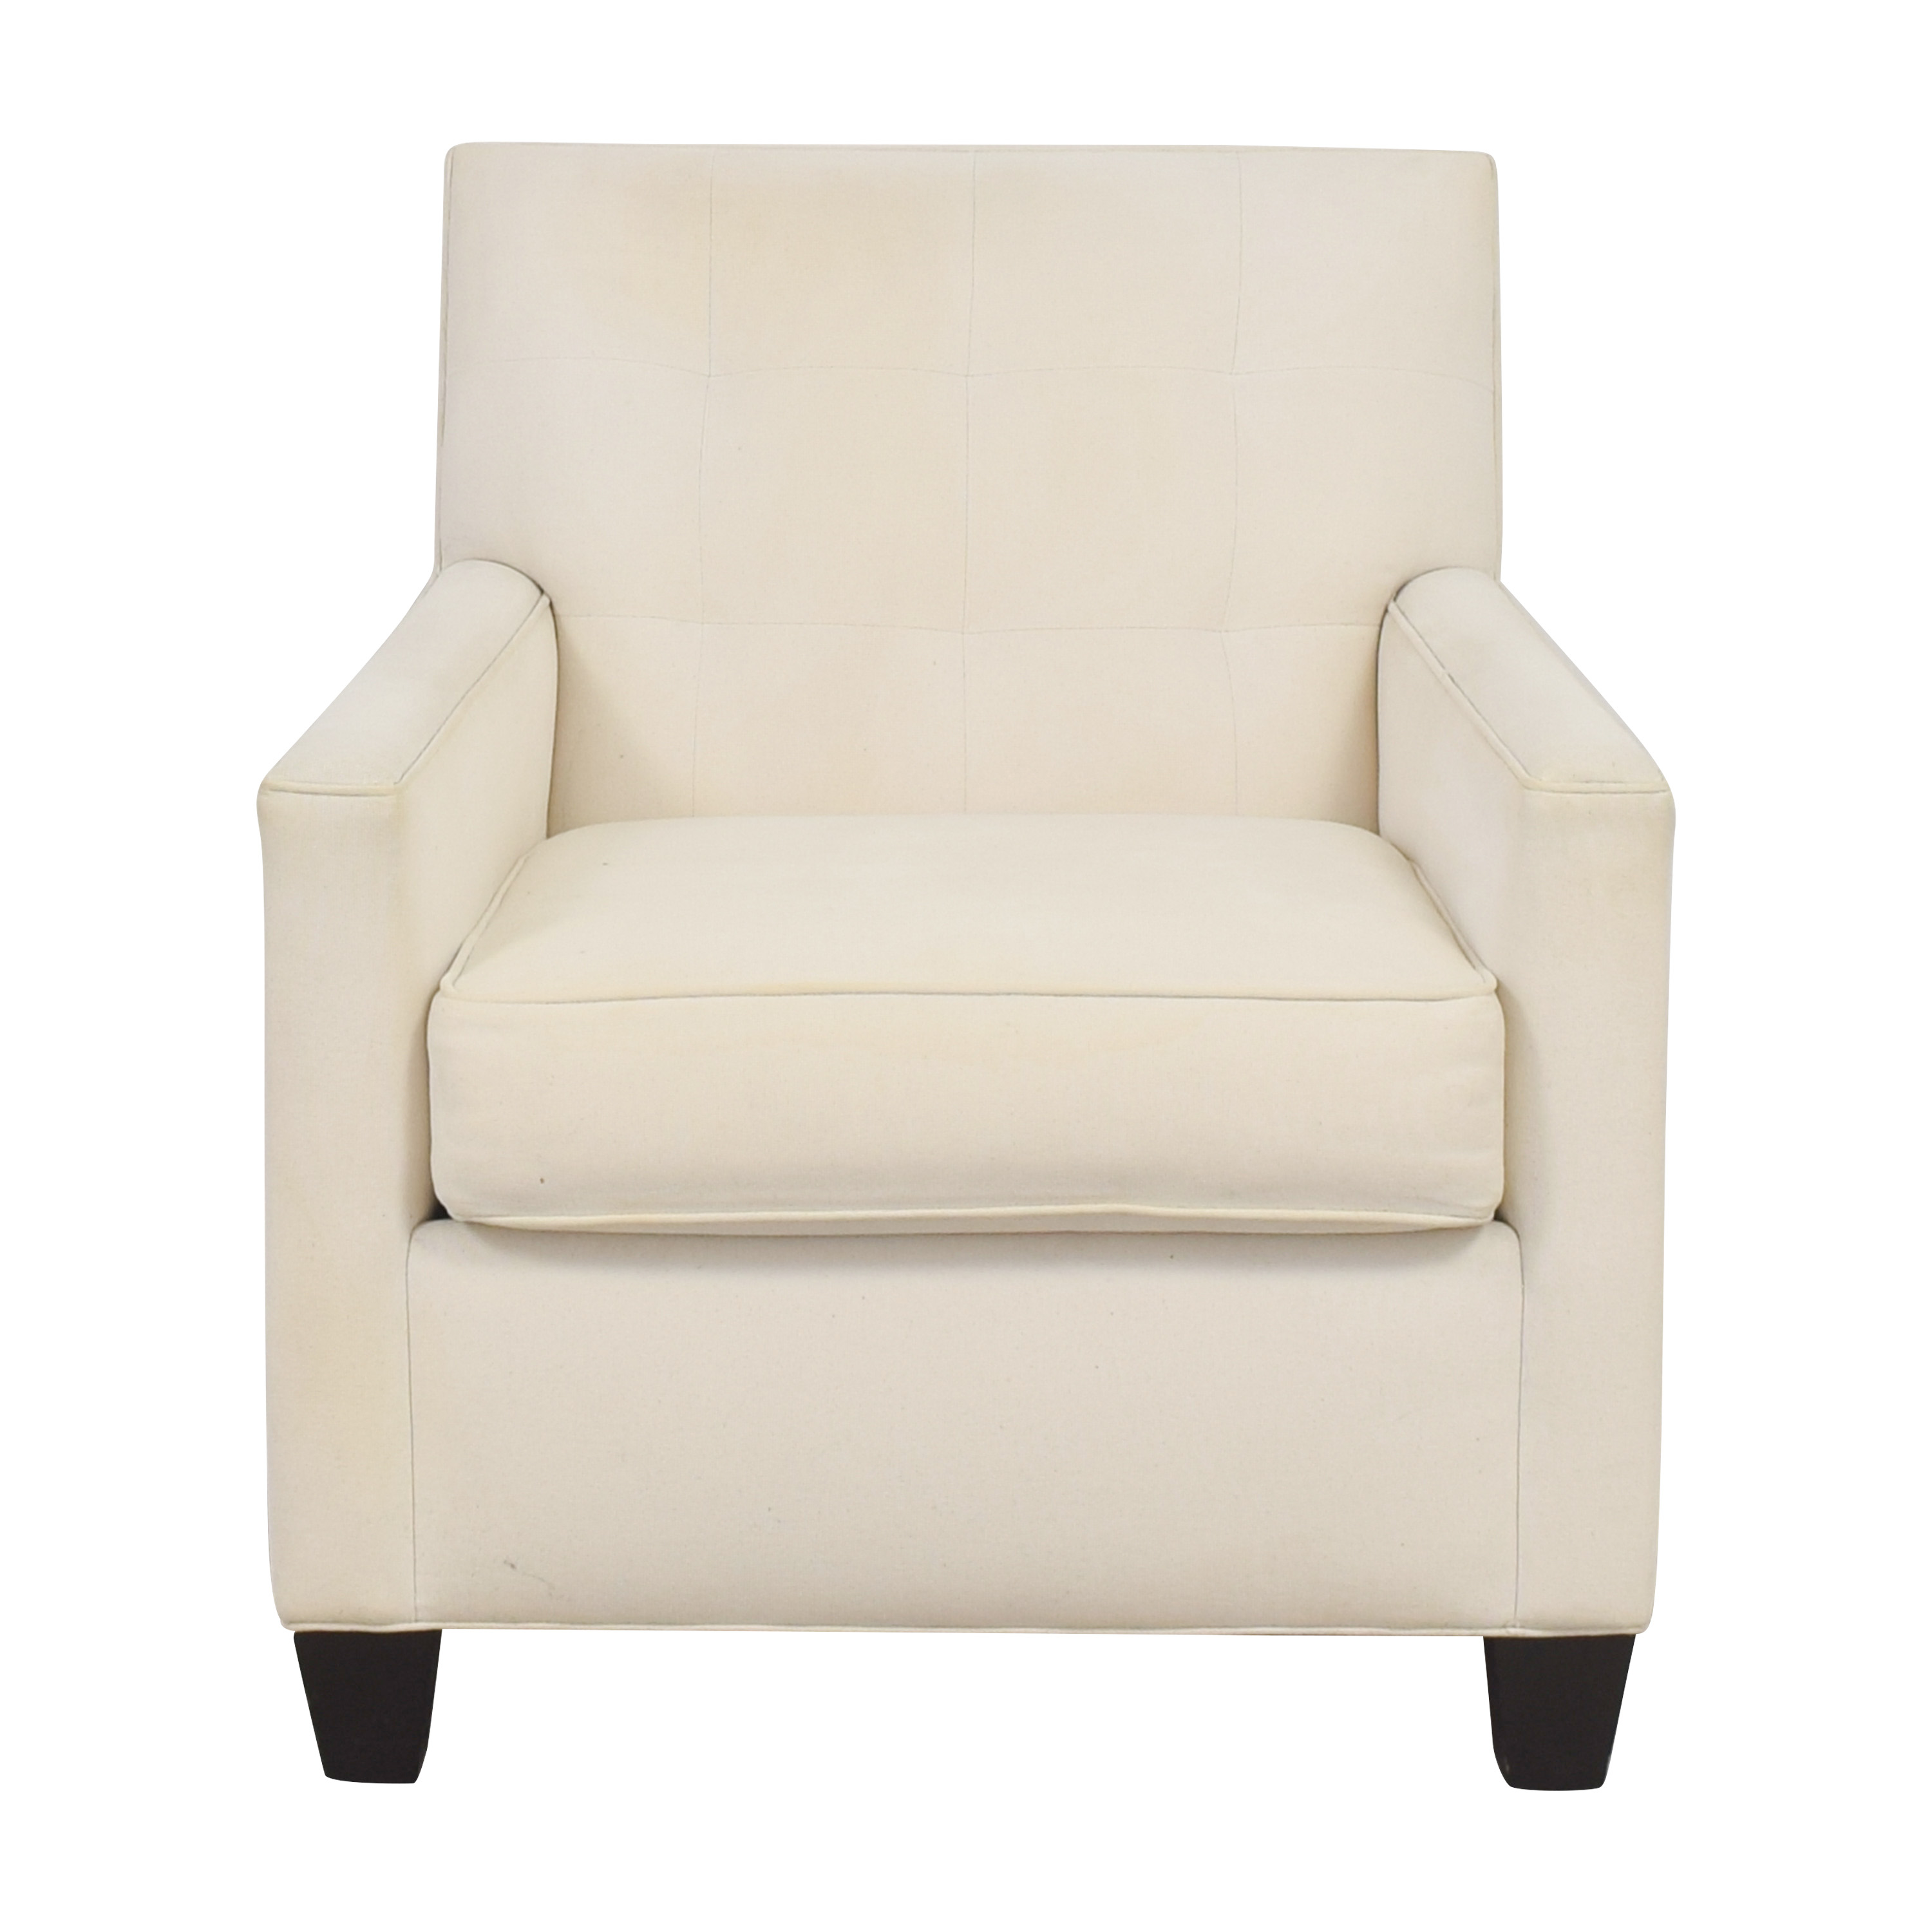 Nathan Anthony Lounge Chair sale